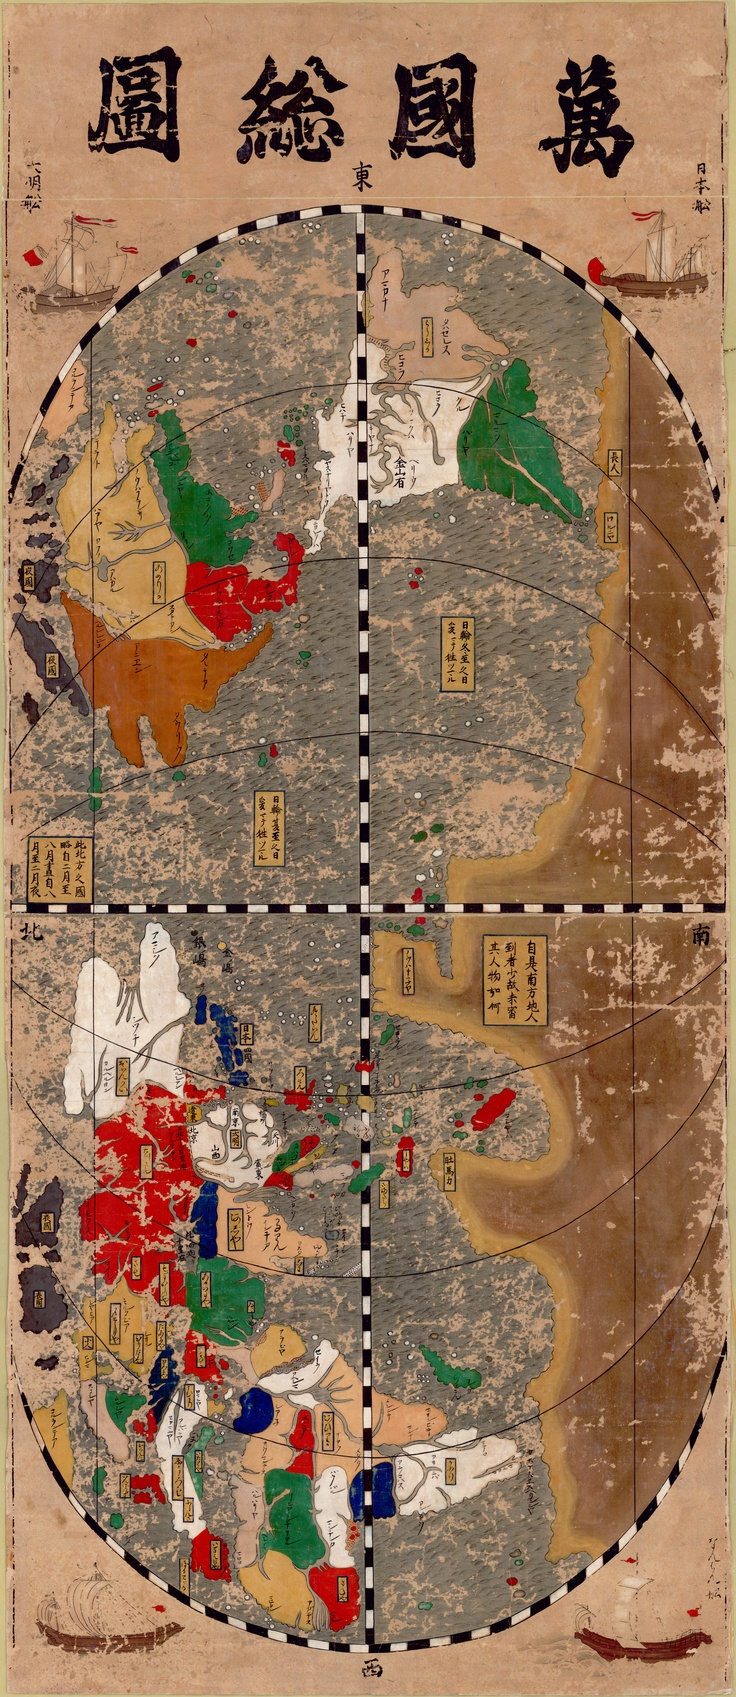 """This double-sided Japanese woodcut displays a world map on the front and illustrated examples of the peoples of the world on the verso.  It exemplifies the Bankoku-sozu (""""complete maps of the peoples of the world"""") style of cartography influenced by European techniques and geographic knowledge in the sixteenth and seventeenth centuries."""